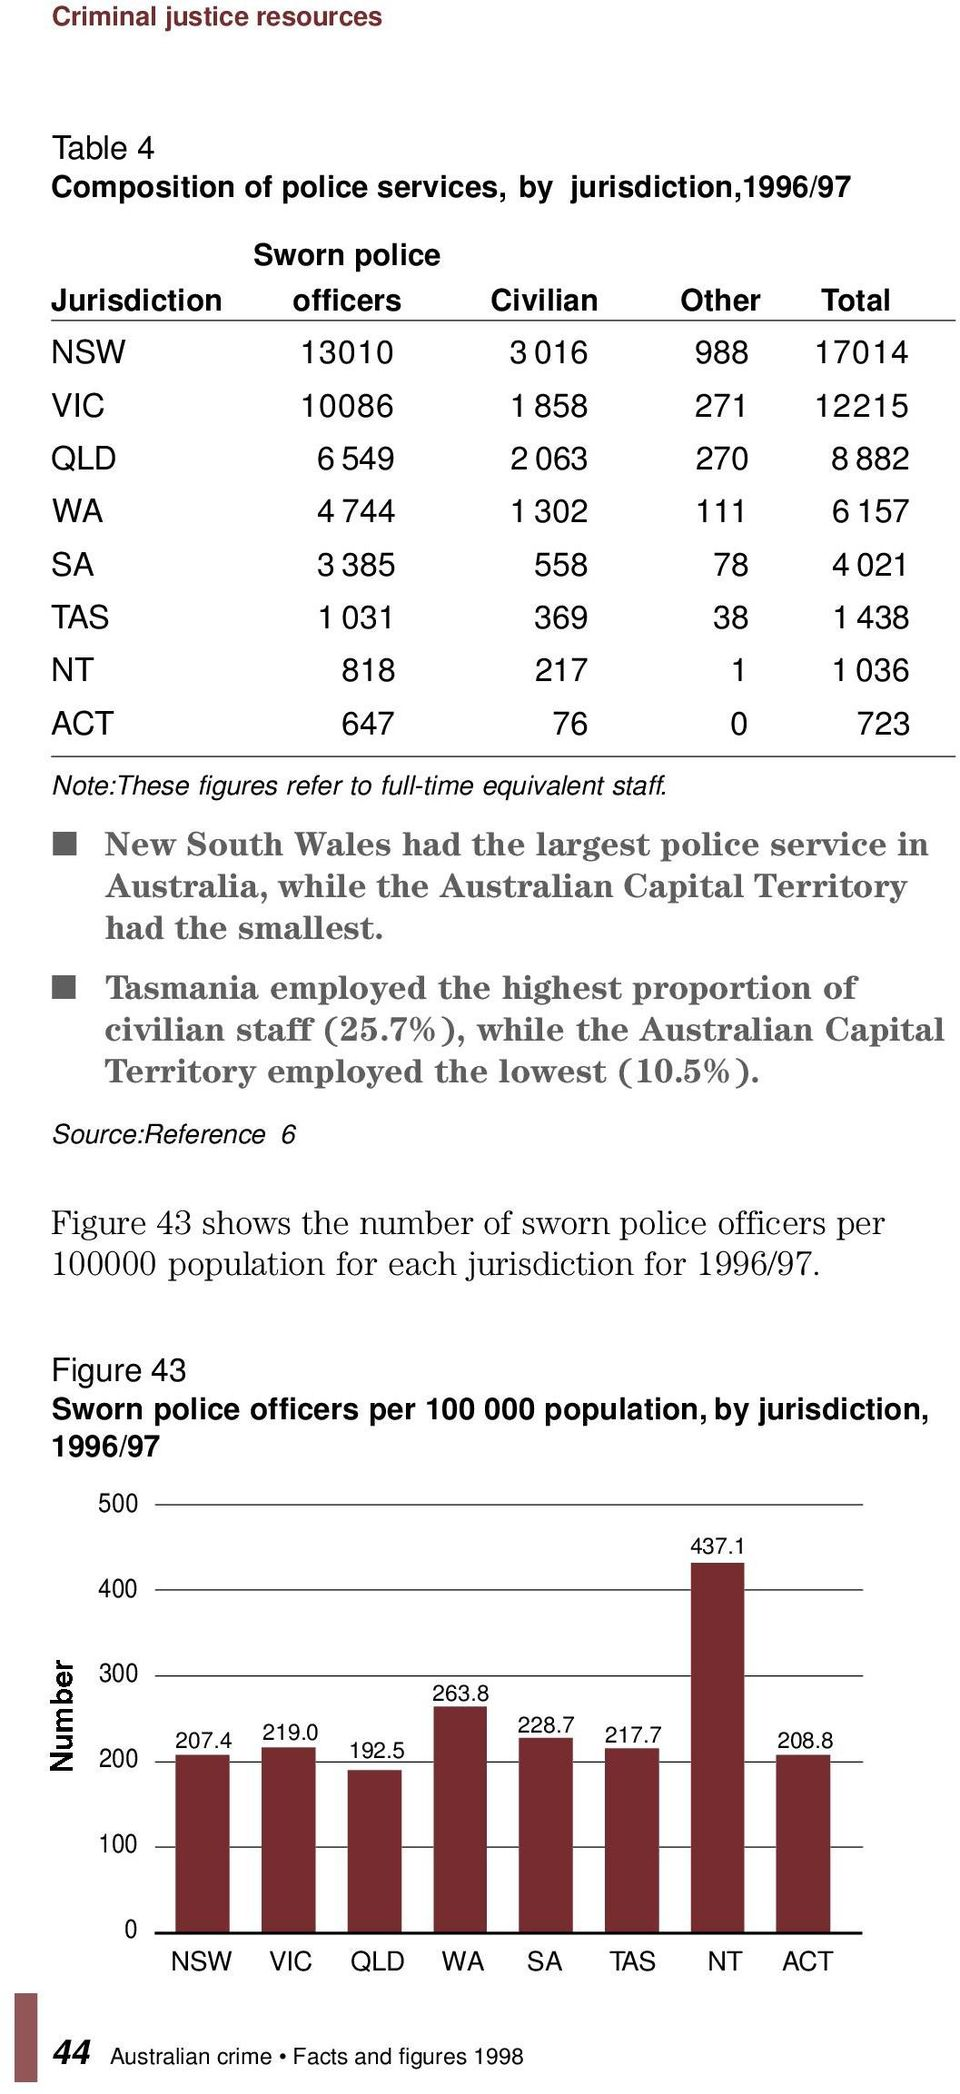 New South Wales had the largest police service in Australia, while the Australian Capital Territory had the smallest. Tasmania employed the highest proportion of civilian staff (25.